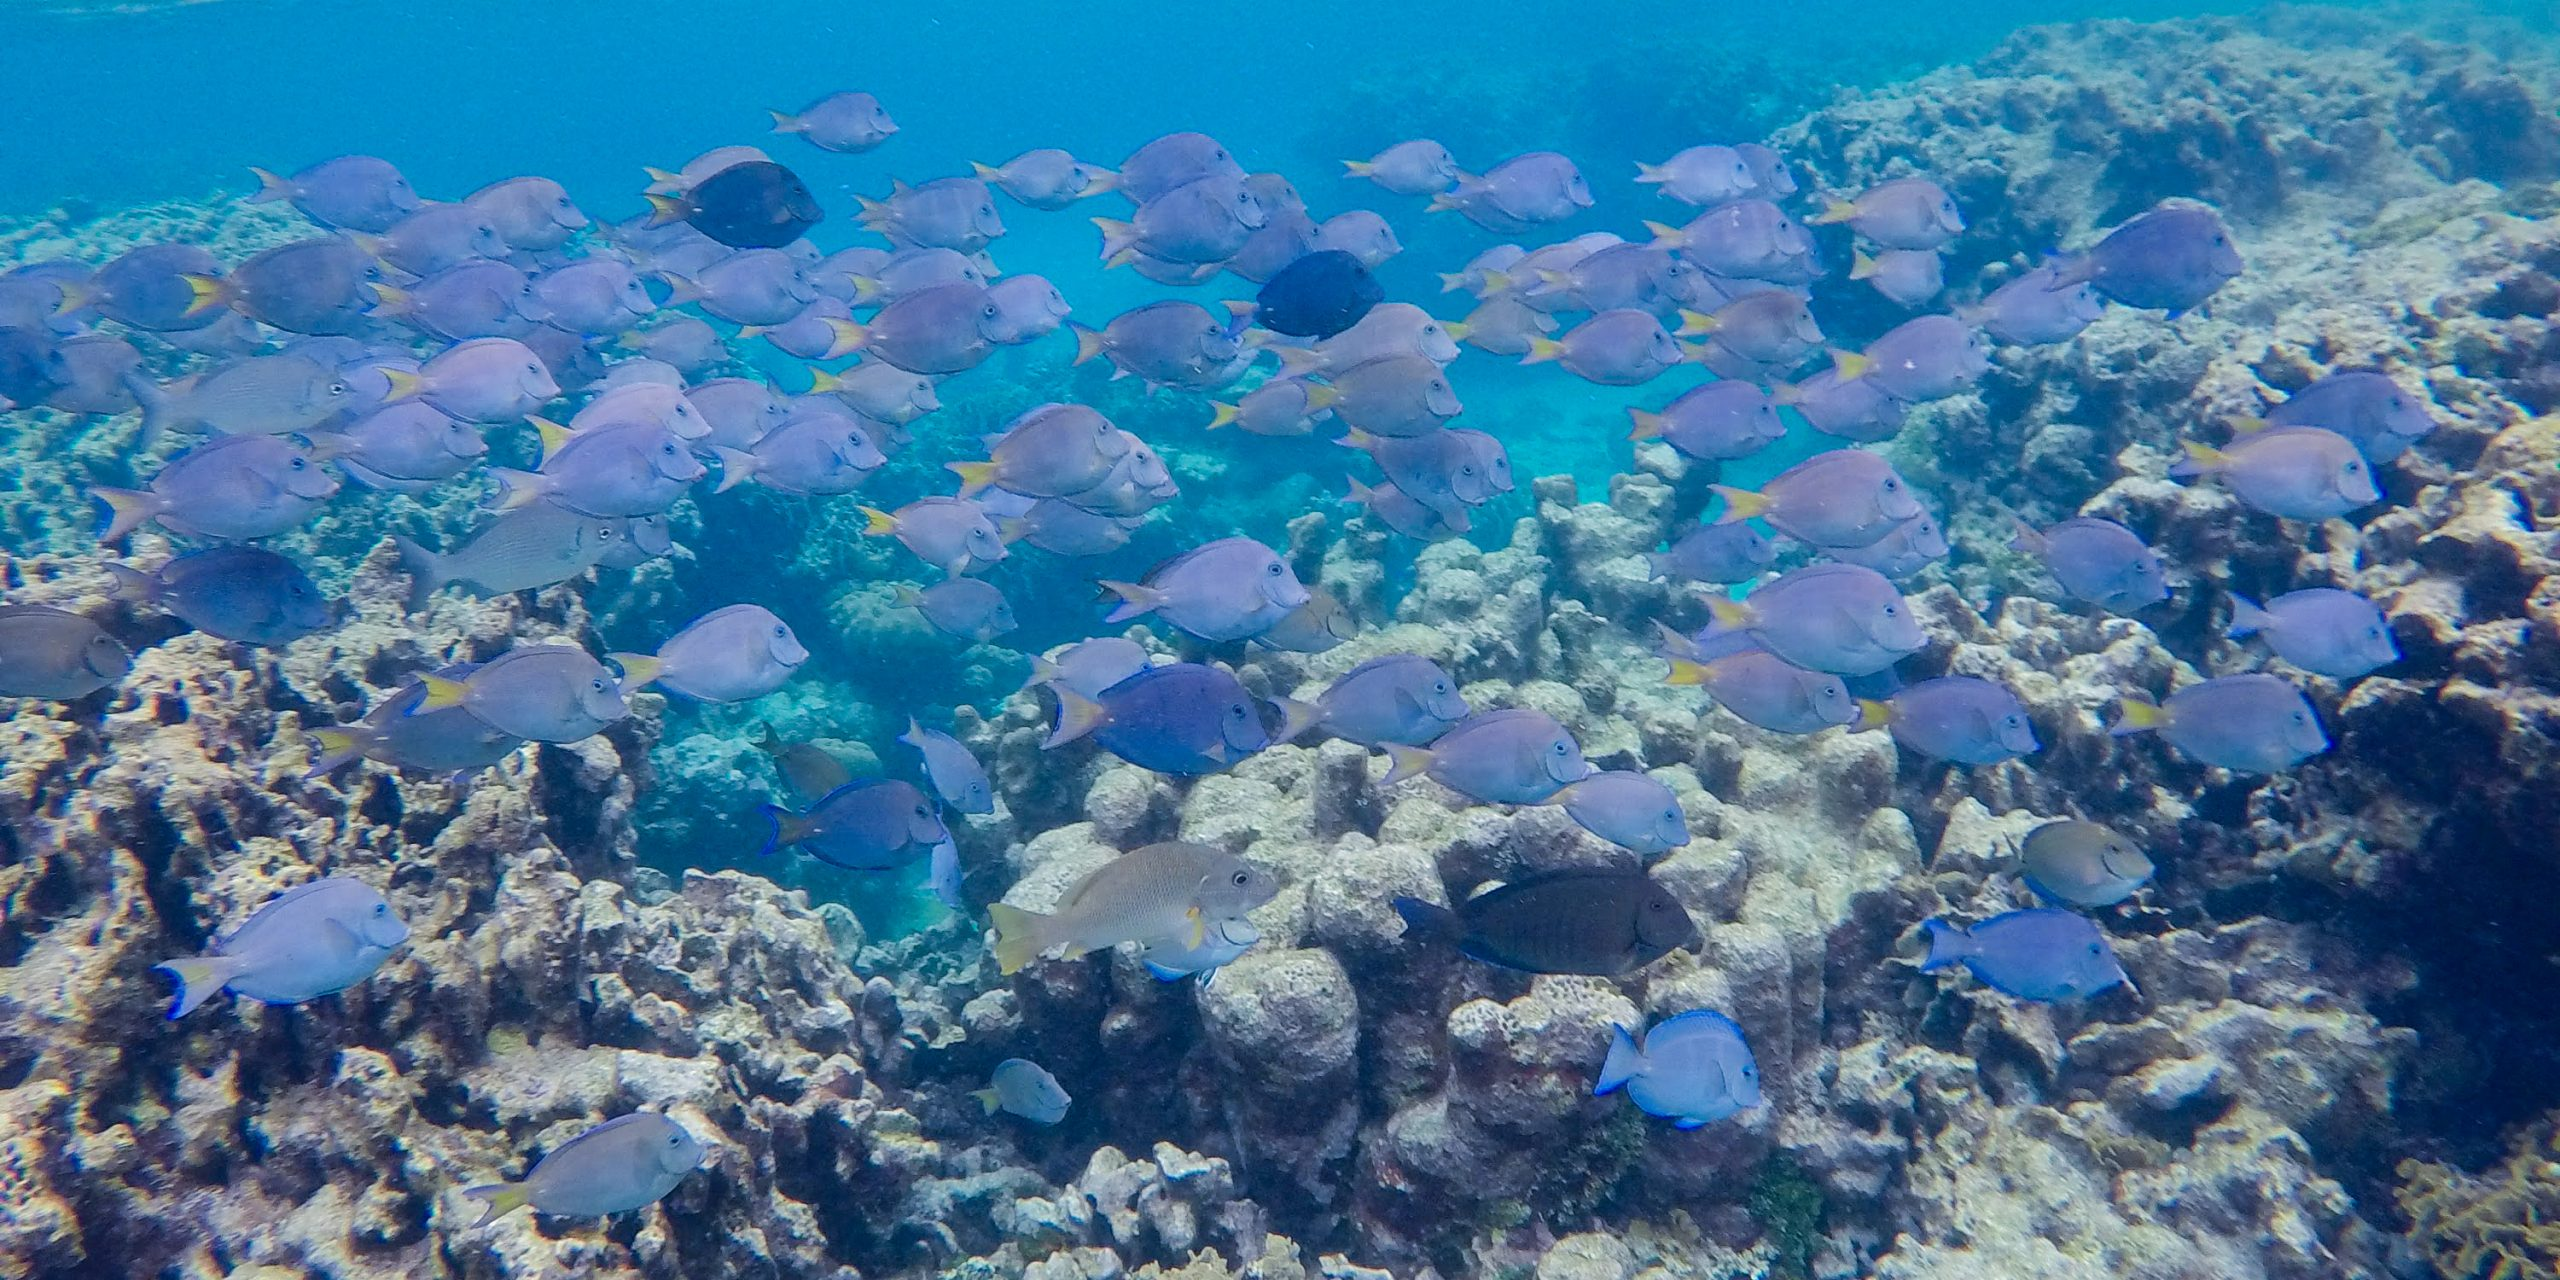 School of blue fish while snorkeling in Utila